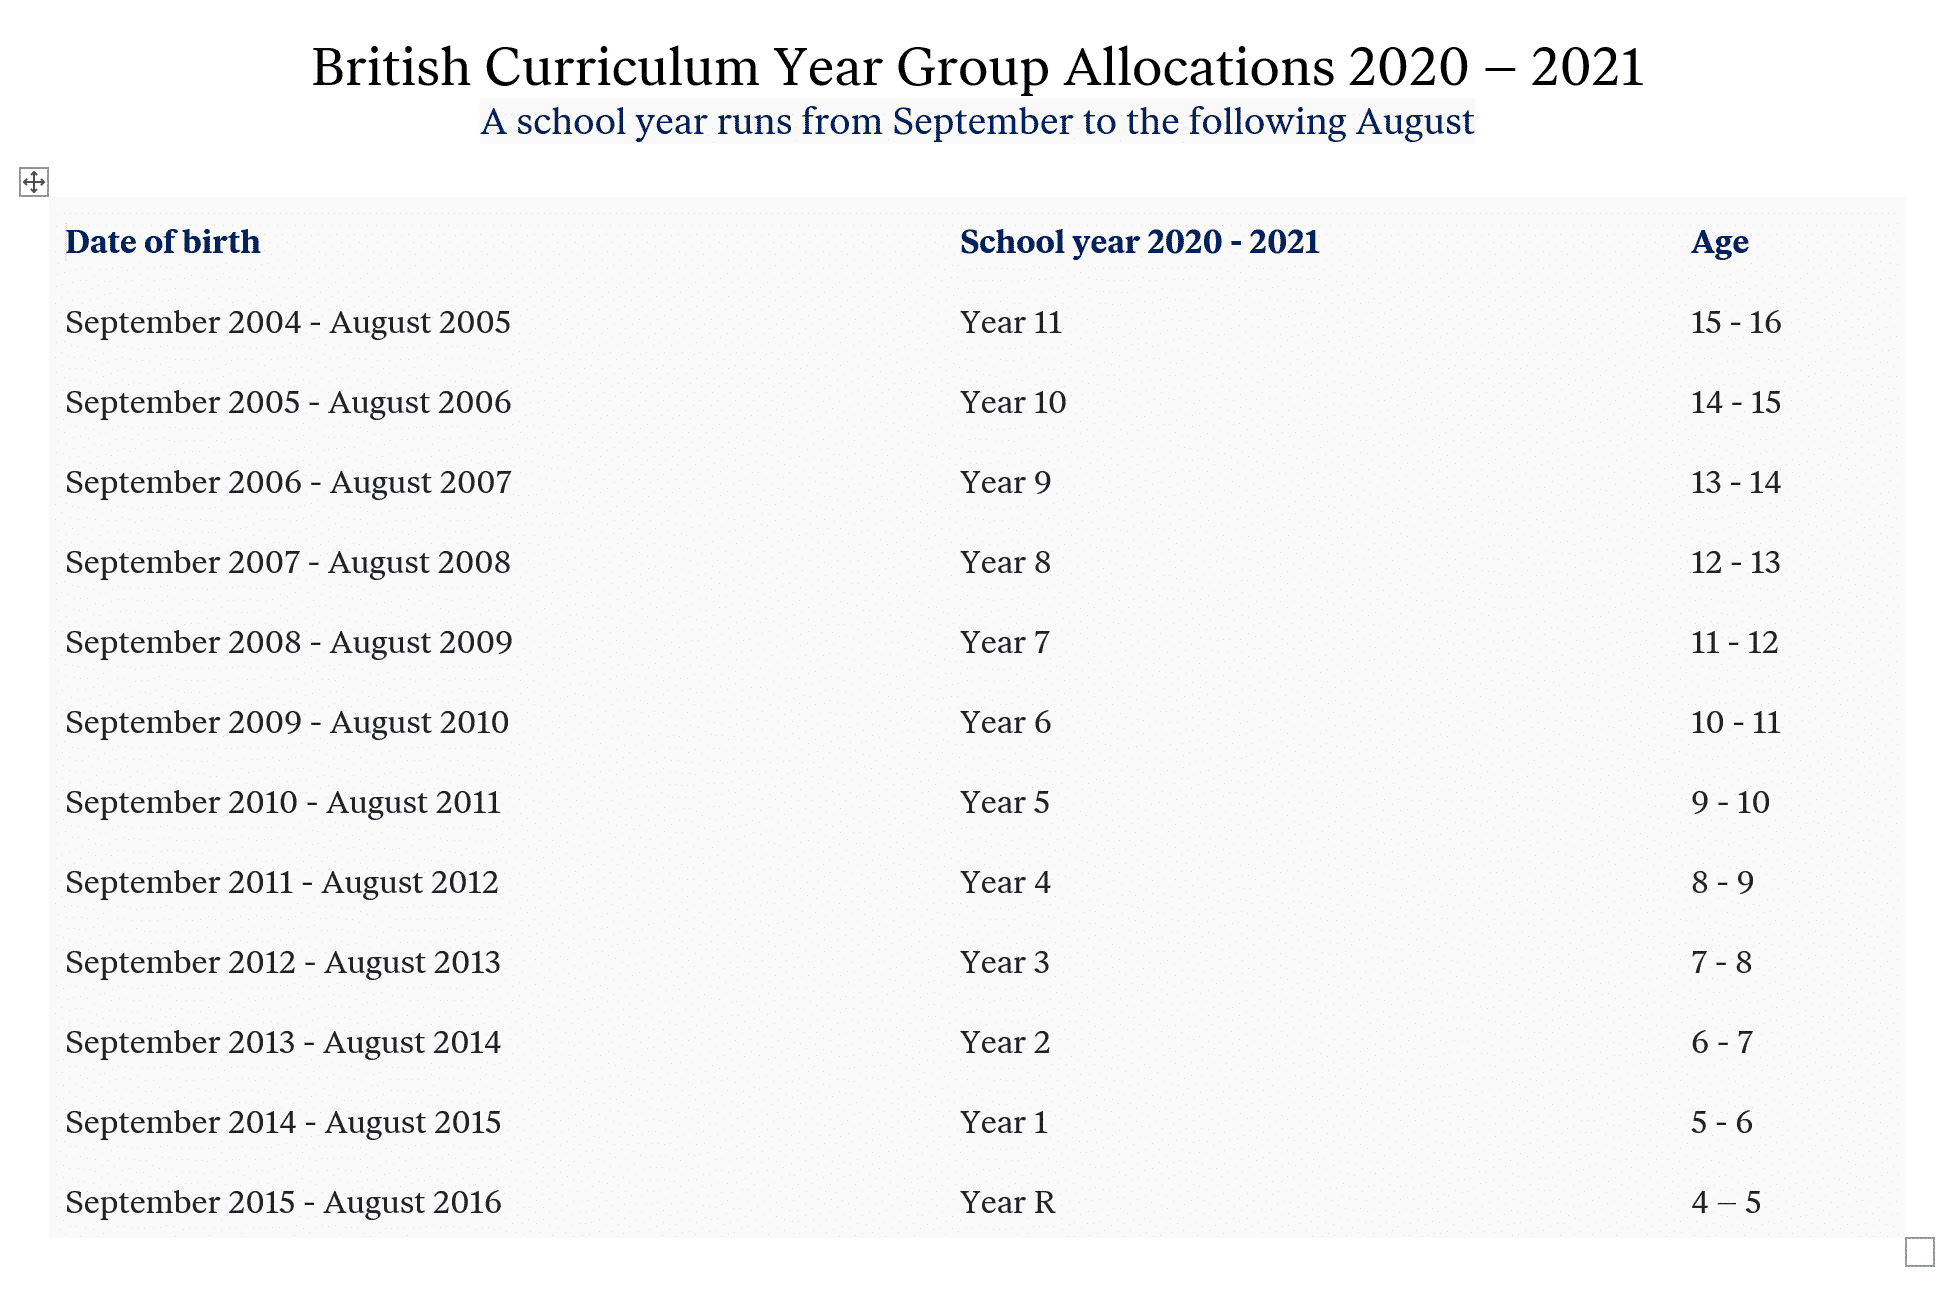 Year group allocations